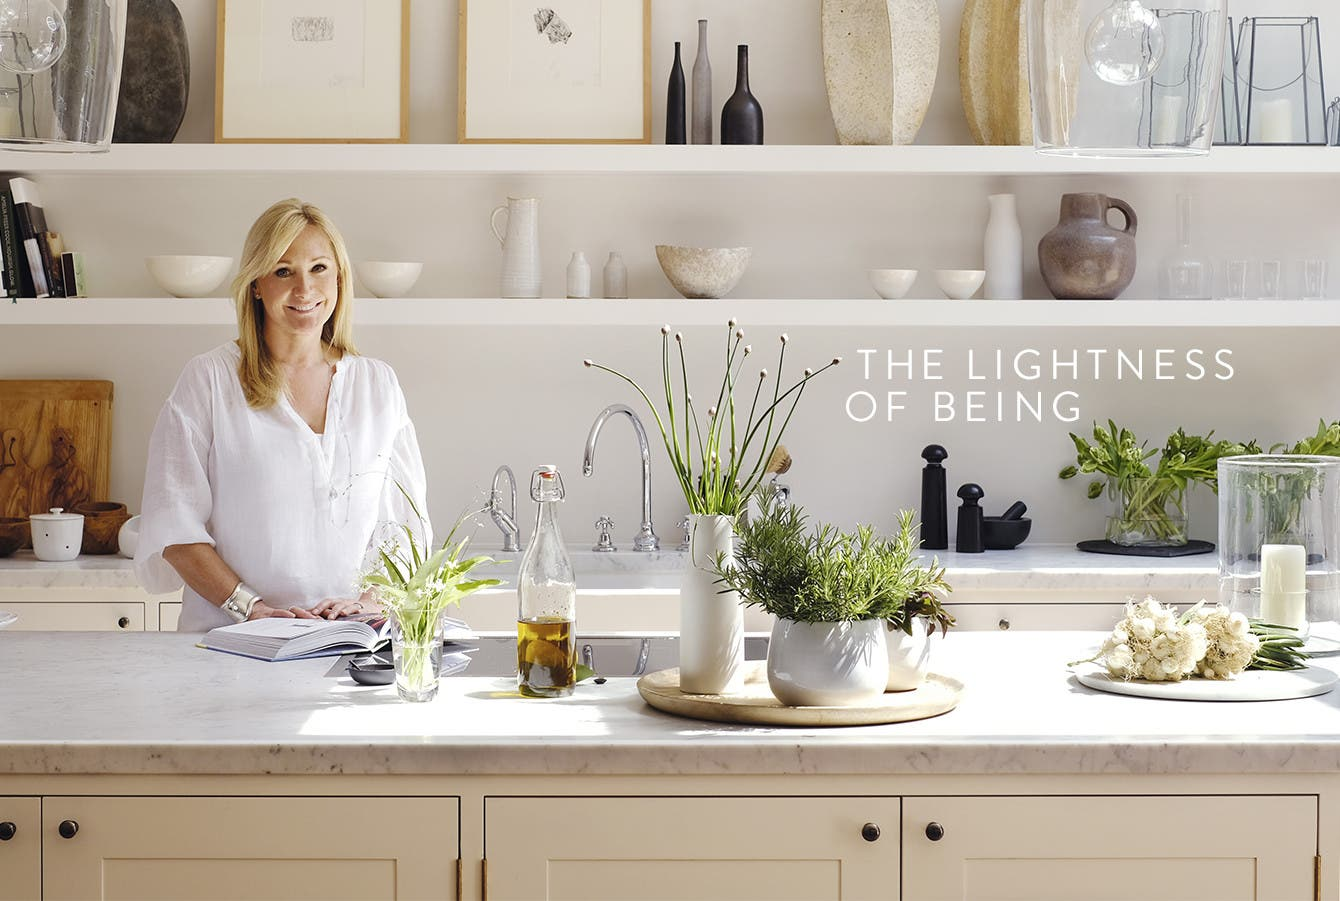 Chrissie Rucker, founder of lifestyle brand The White Company